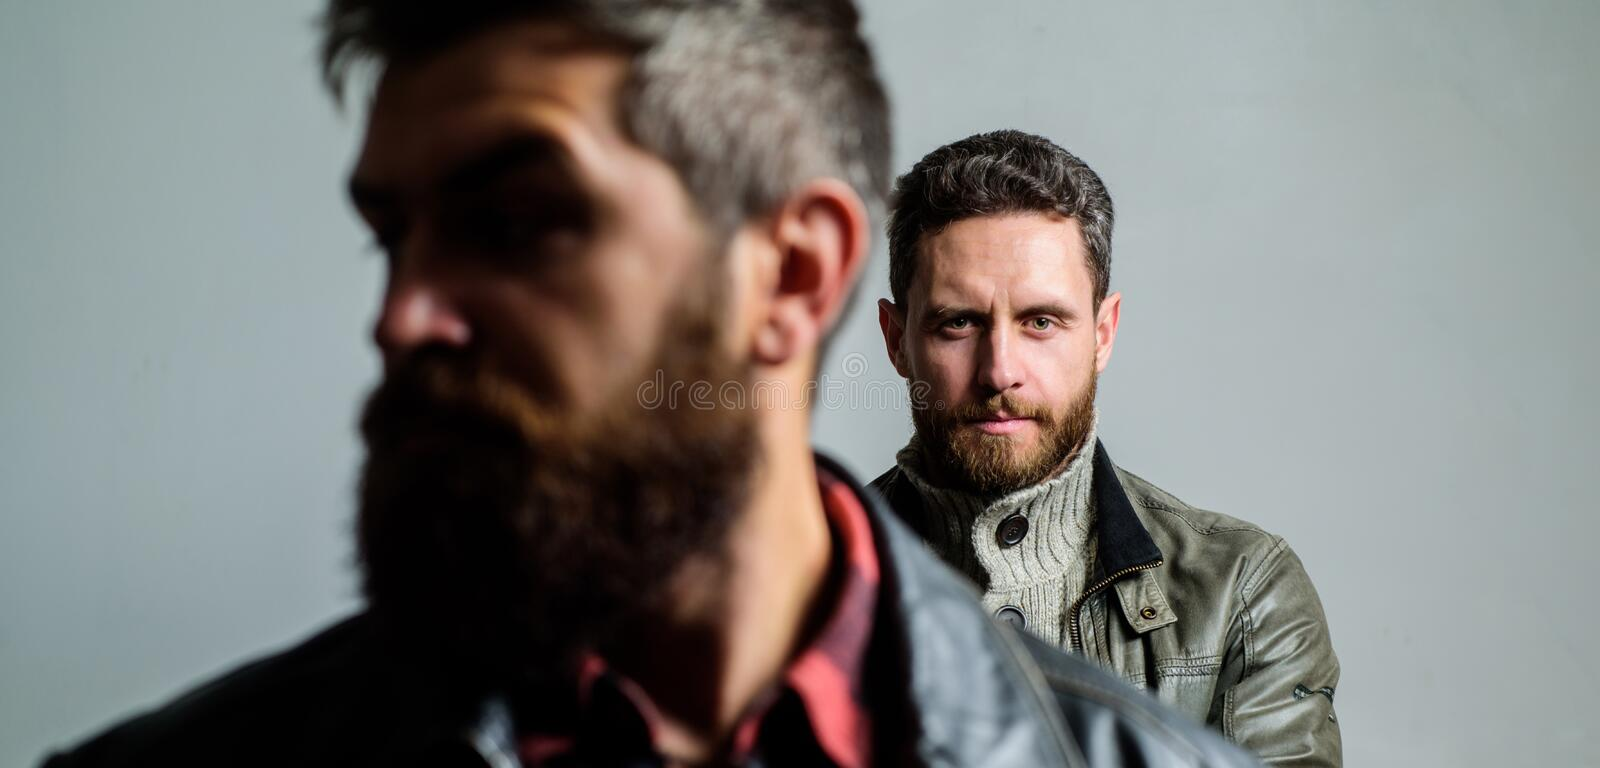 Masculinity and brutal appearance. Male hair care tips. Barbershop concept. Men handsome with beard and mustache facial. Hair. Barber and beard grooming stock photography